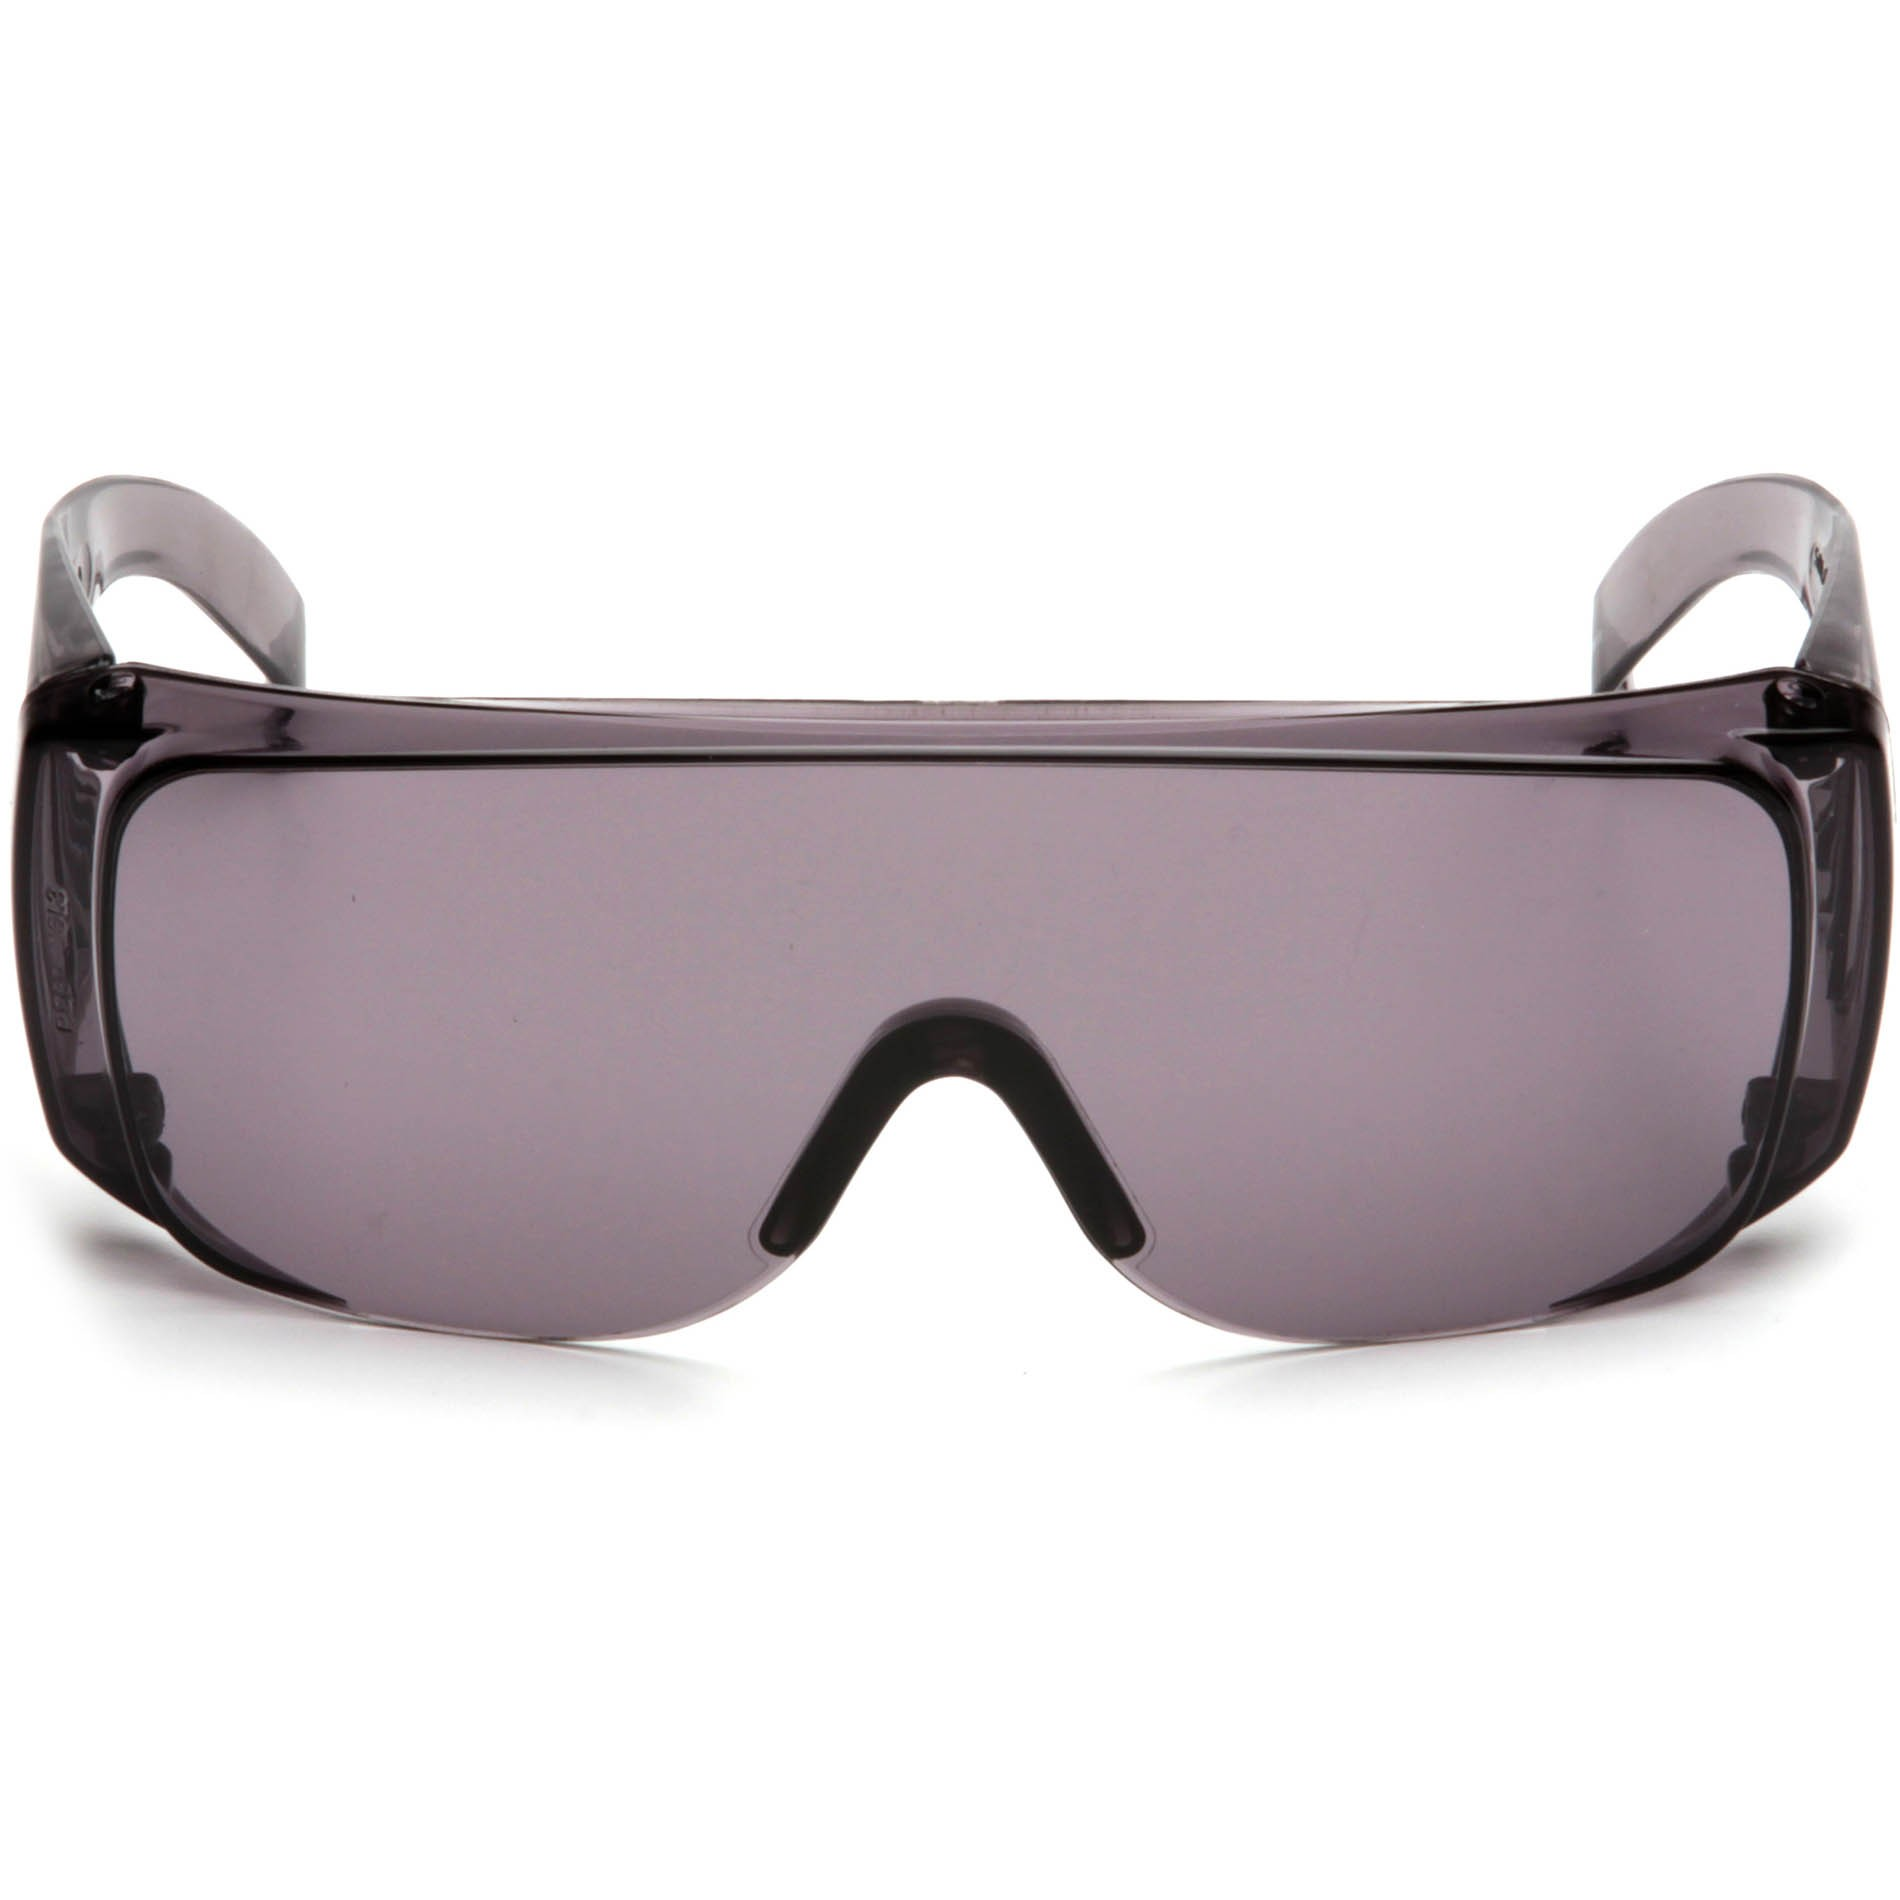 Pyramex Solo Safety Glasses - Gray Frame - Gray Lens ...